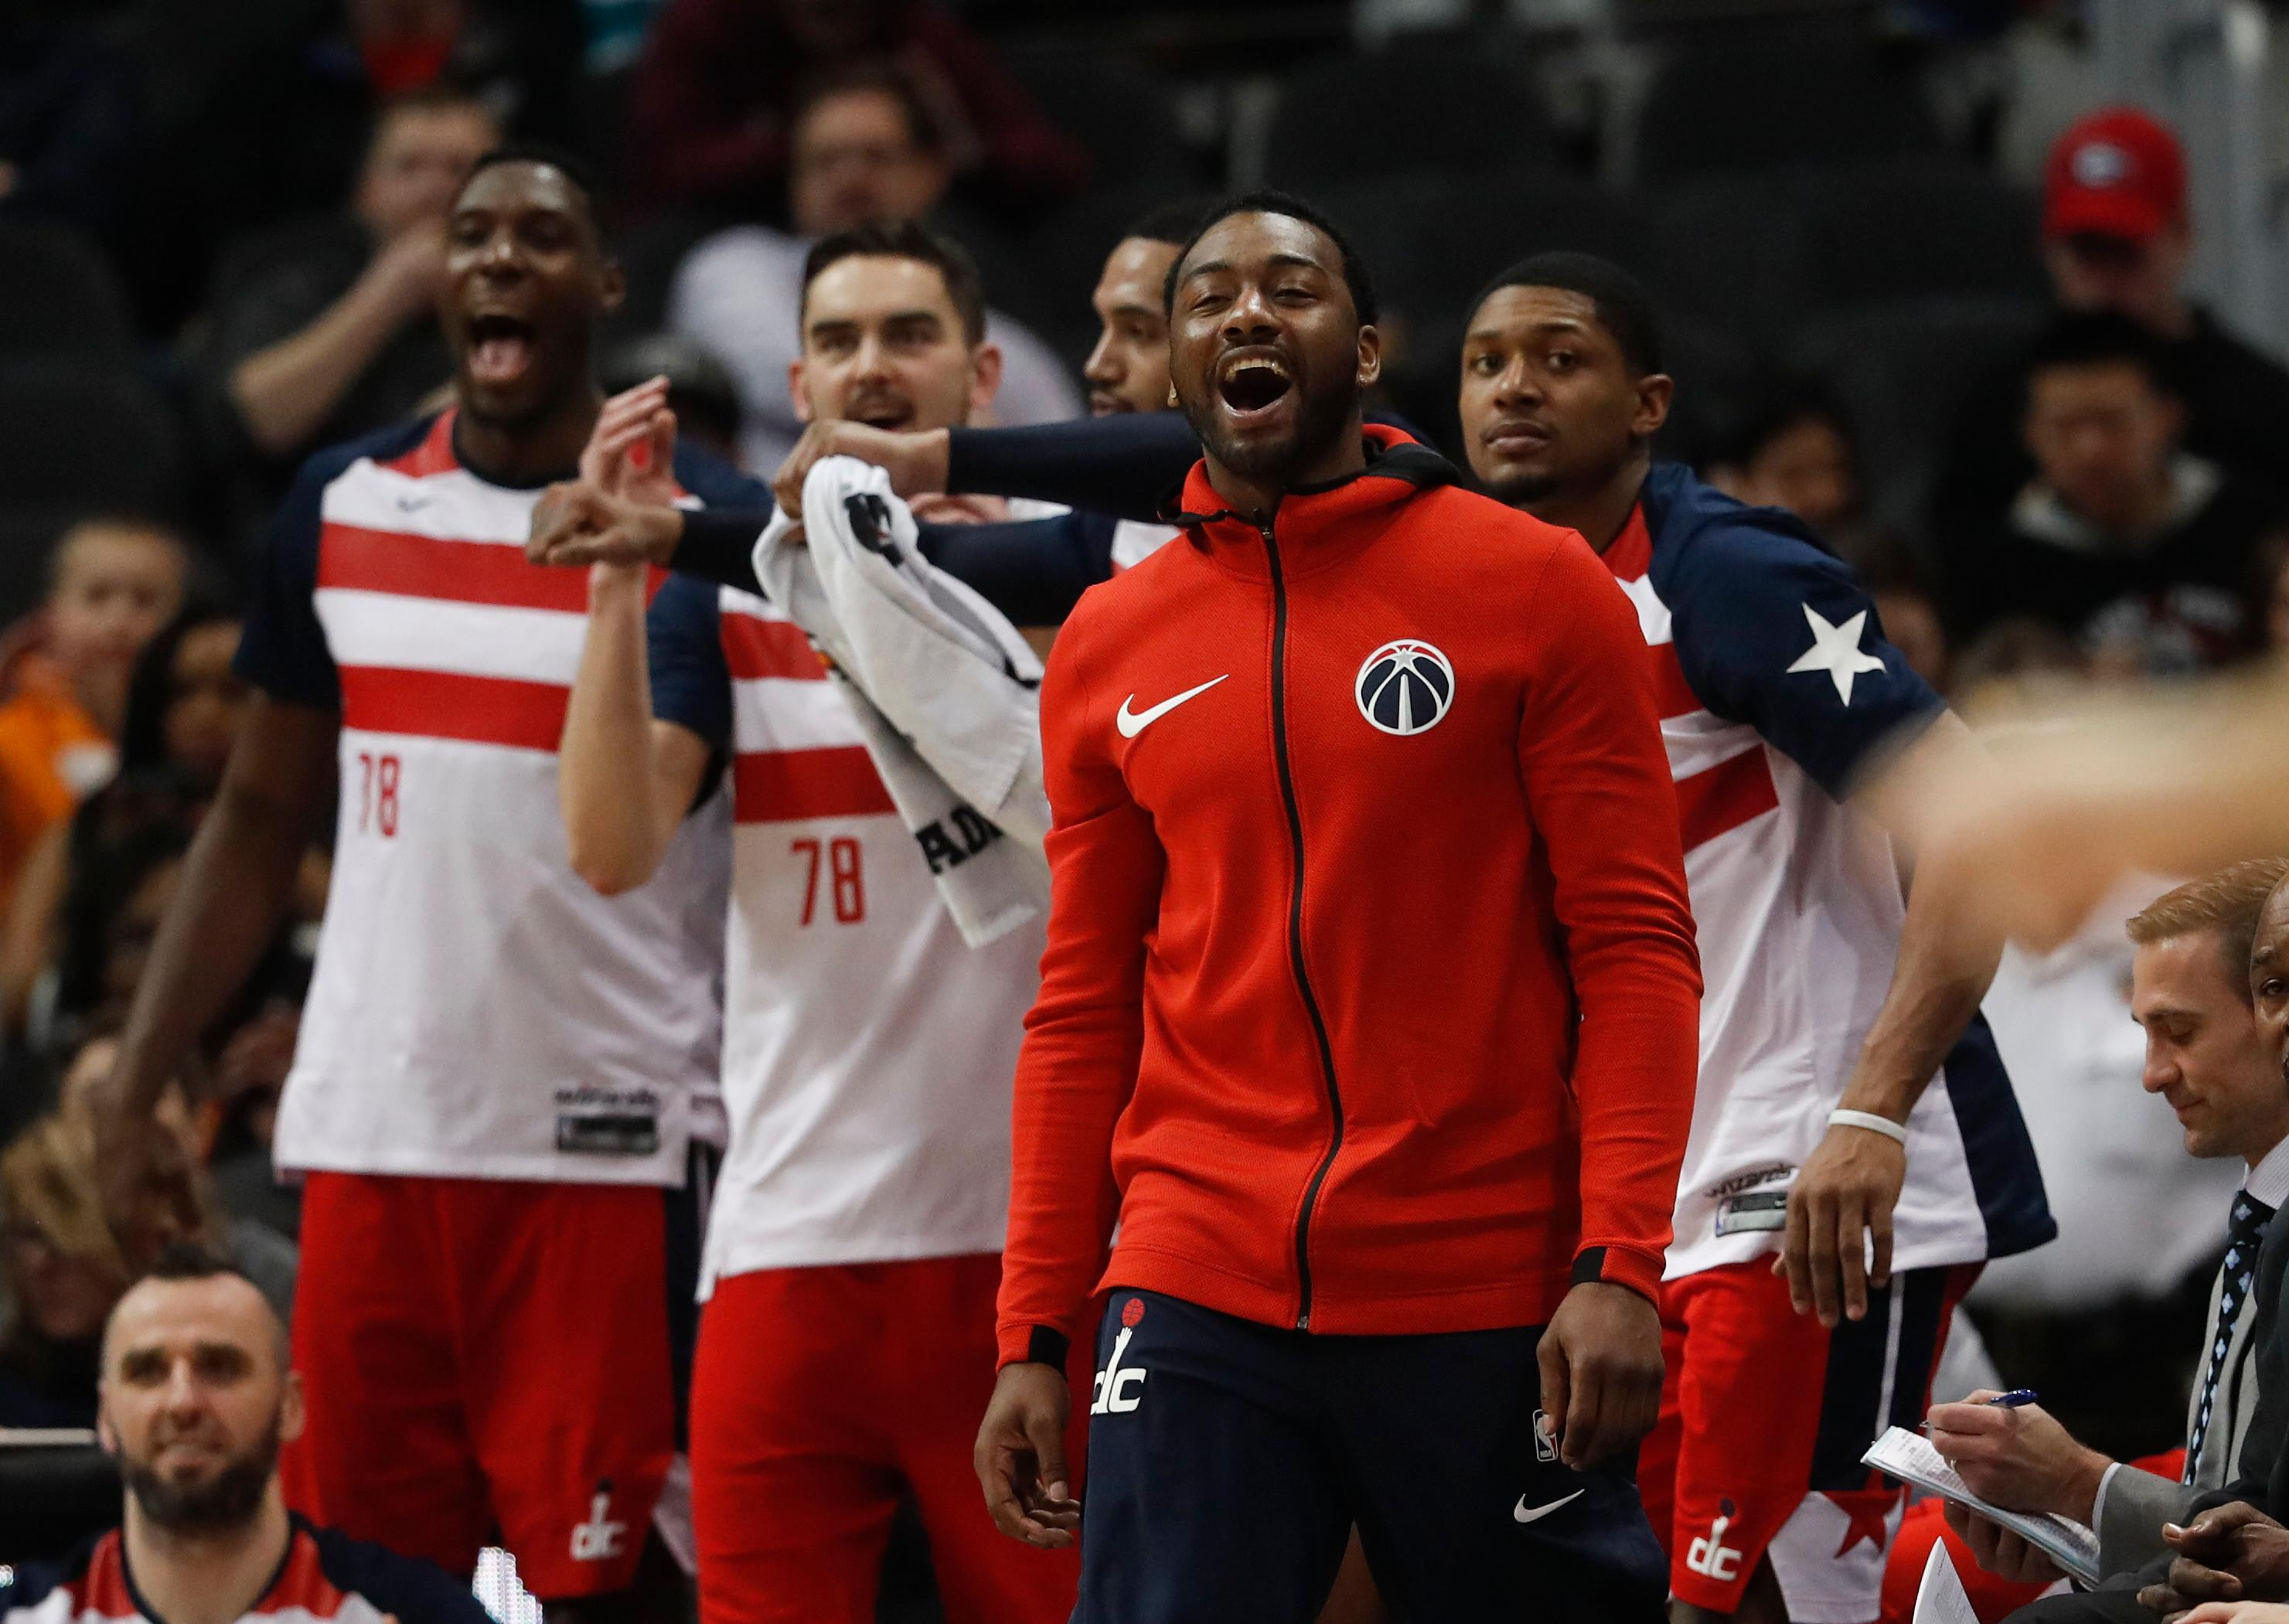 Washington Wizards guard John Wall (2) cheers from the bench in the second half of an NBA basketball game against the Atlanta Hawks Saturday, Jan. 27, 2018, in Atlanta. Washington won 129-104 (AP Photo/John Bazemore)